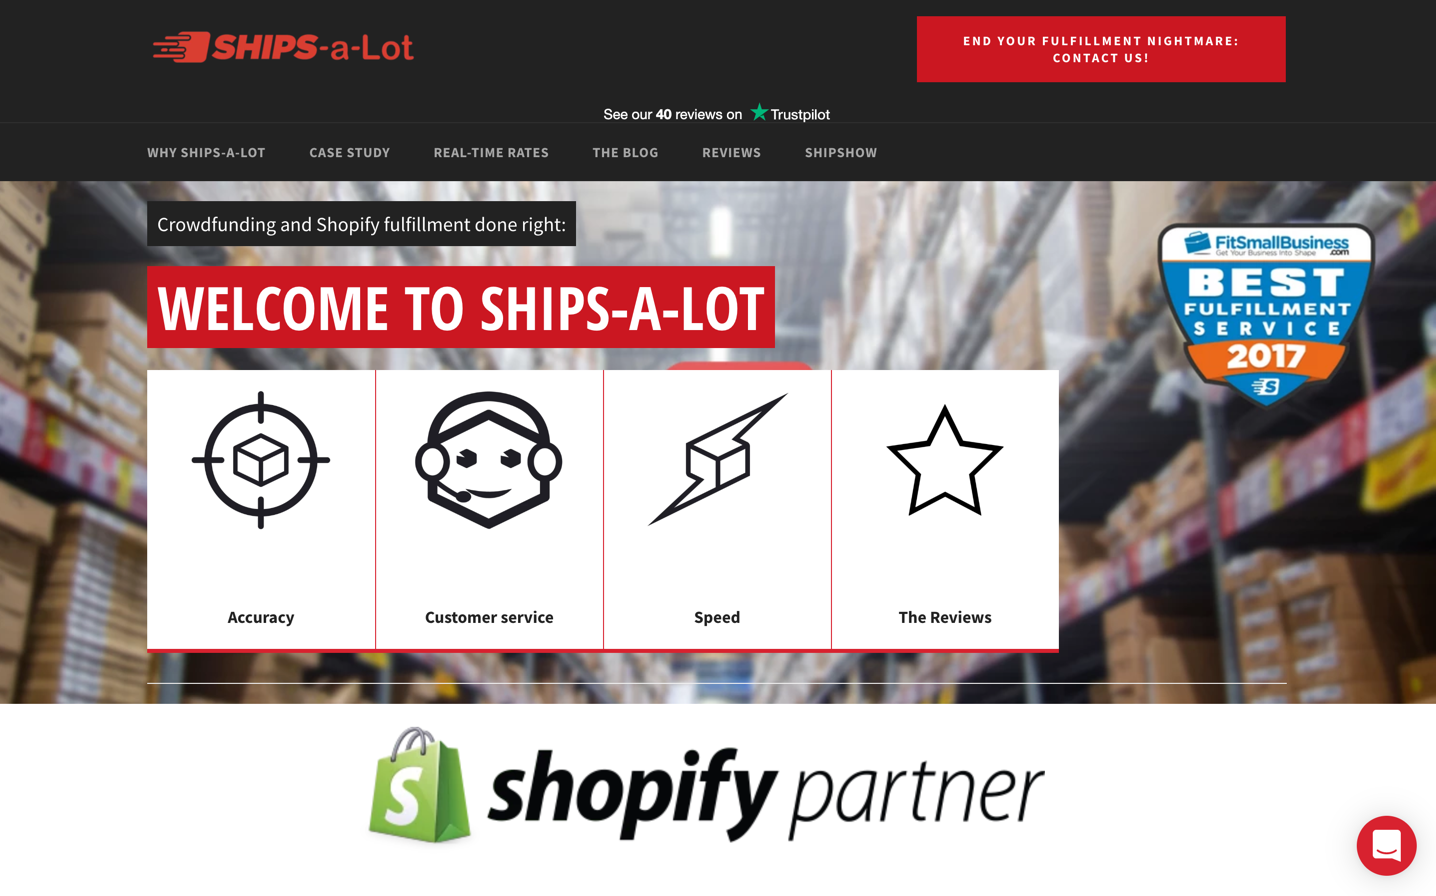 ships-a-lot homepage